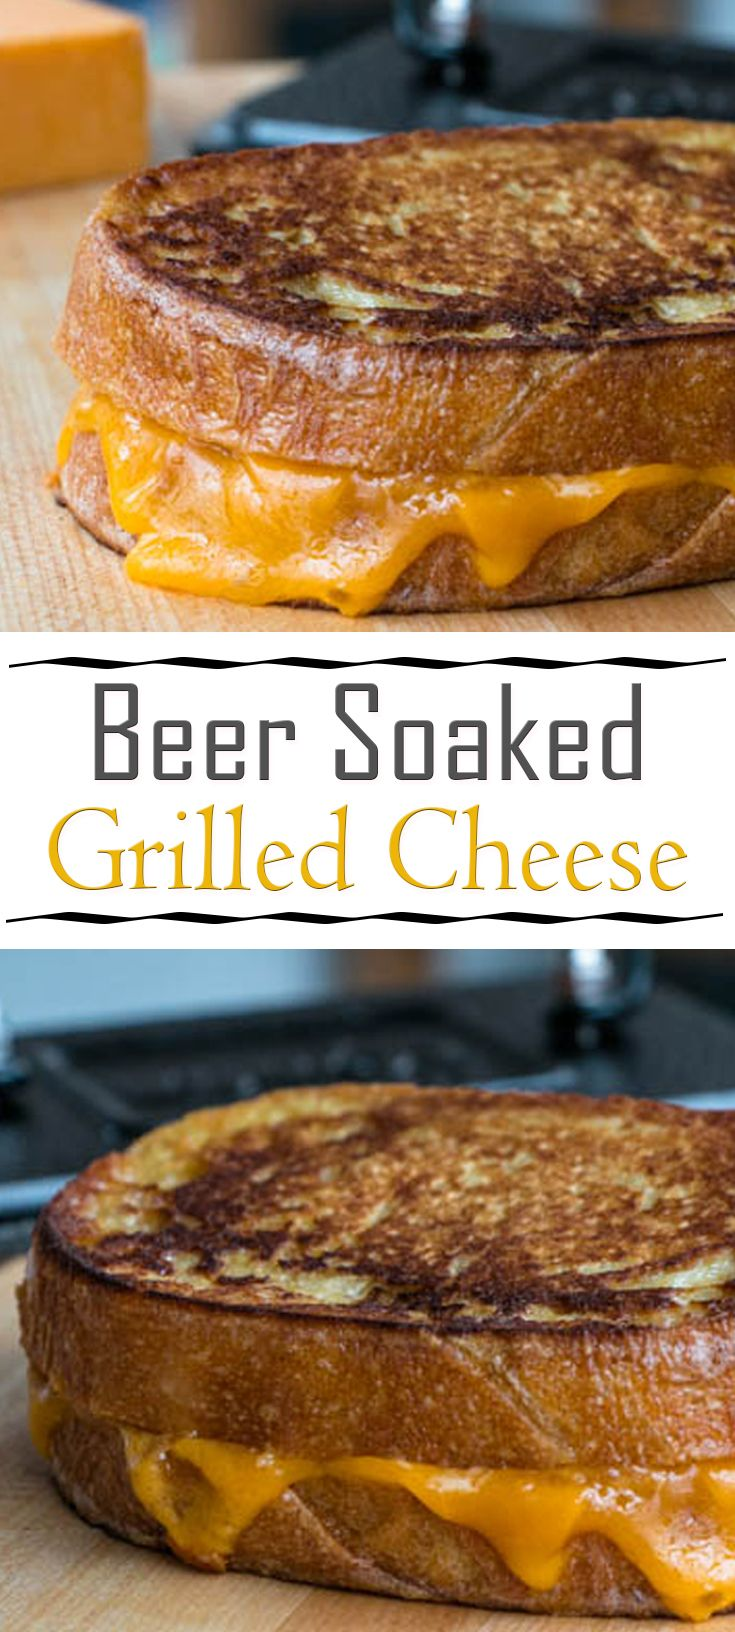 Beer Soaked Grilled Cheese